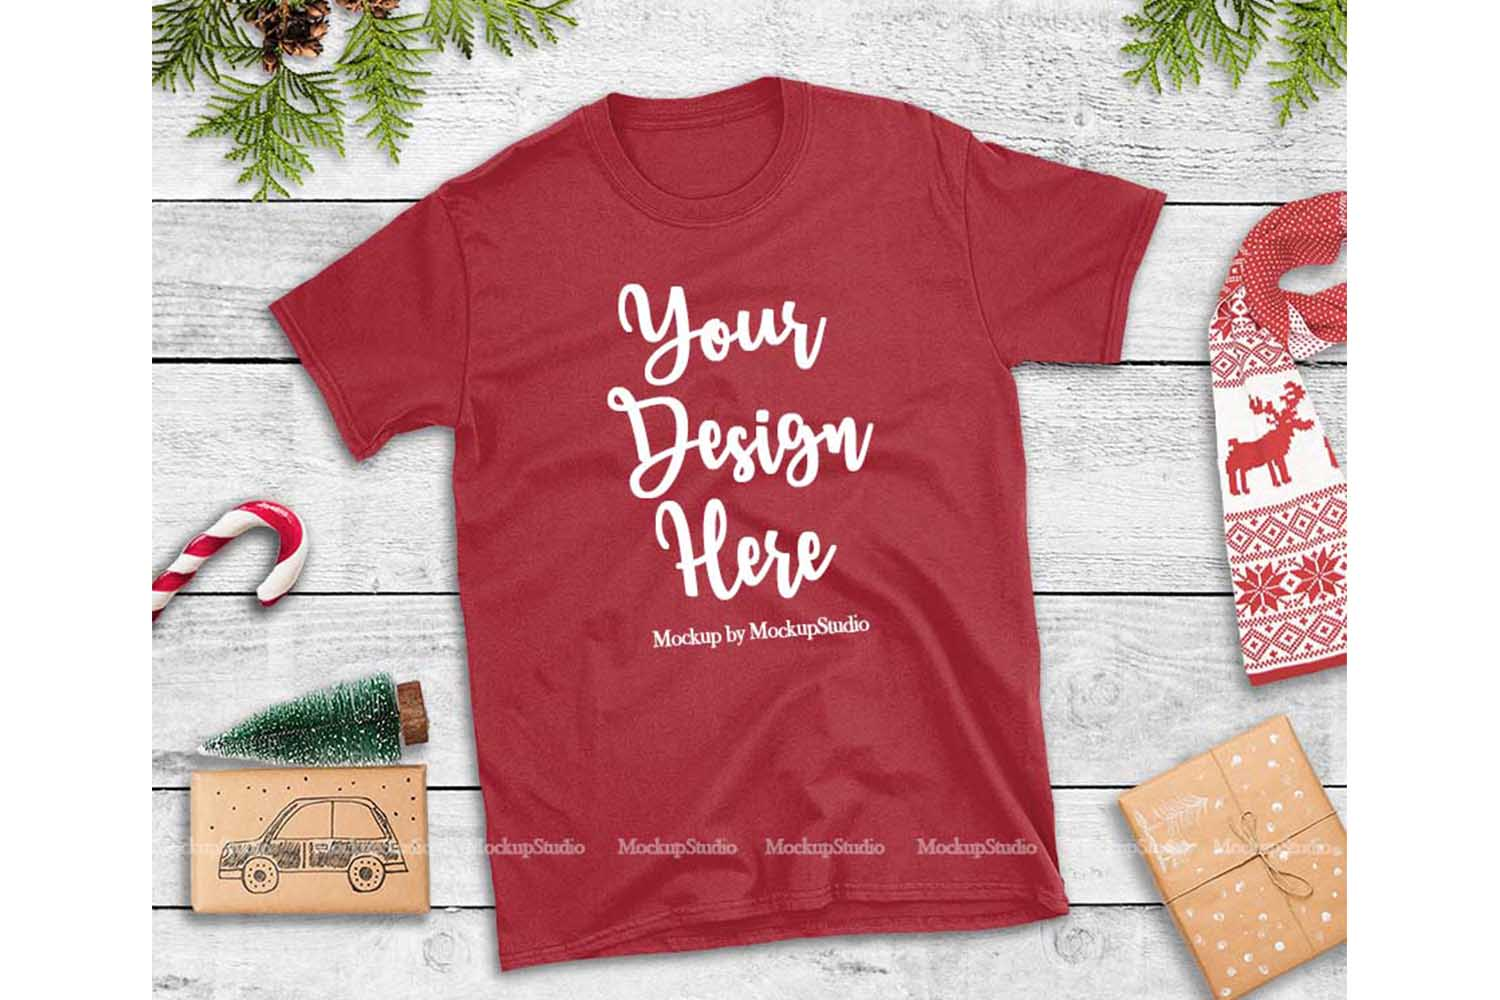 Red Christmas Tshirt Mockup Flat Lay Holiday Shirt Display example image 1